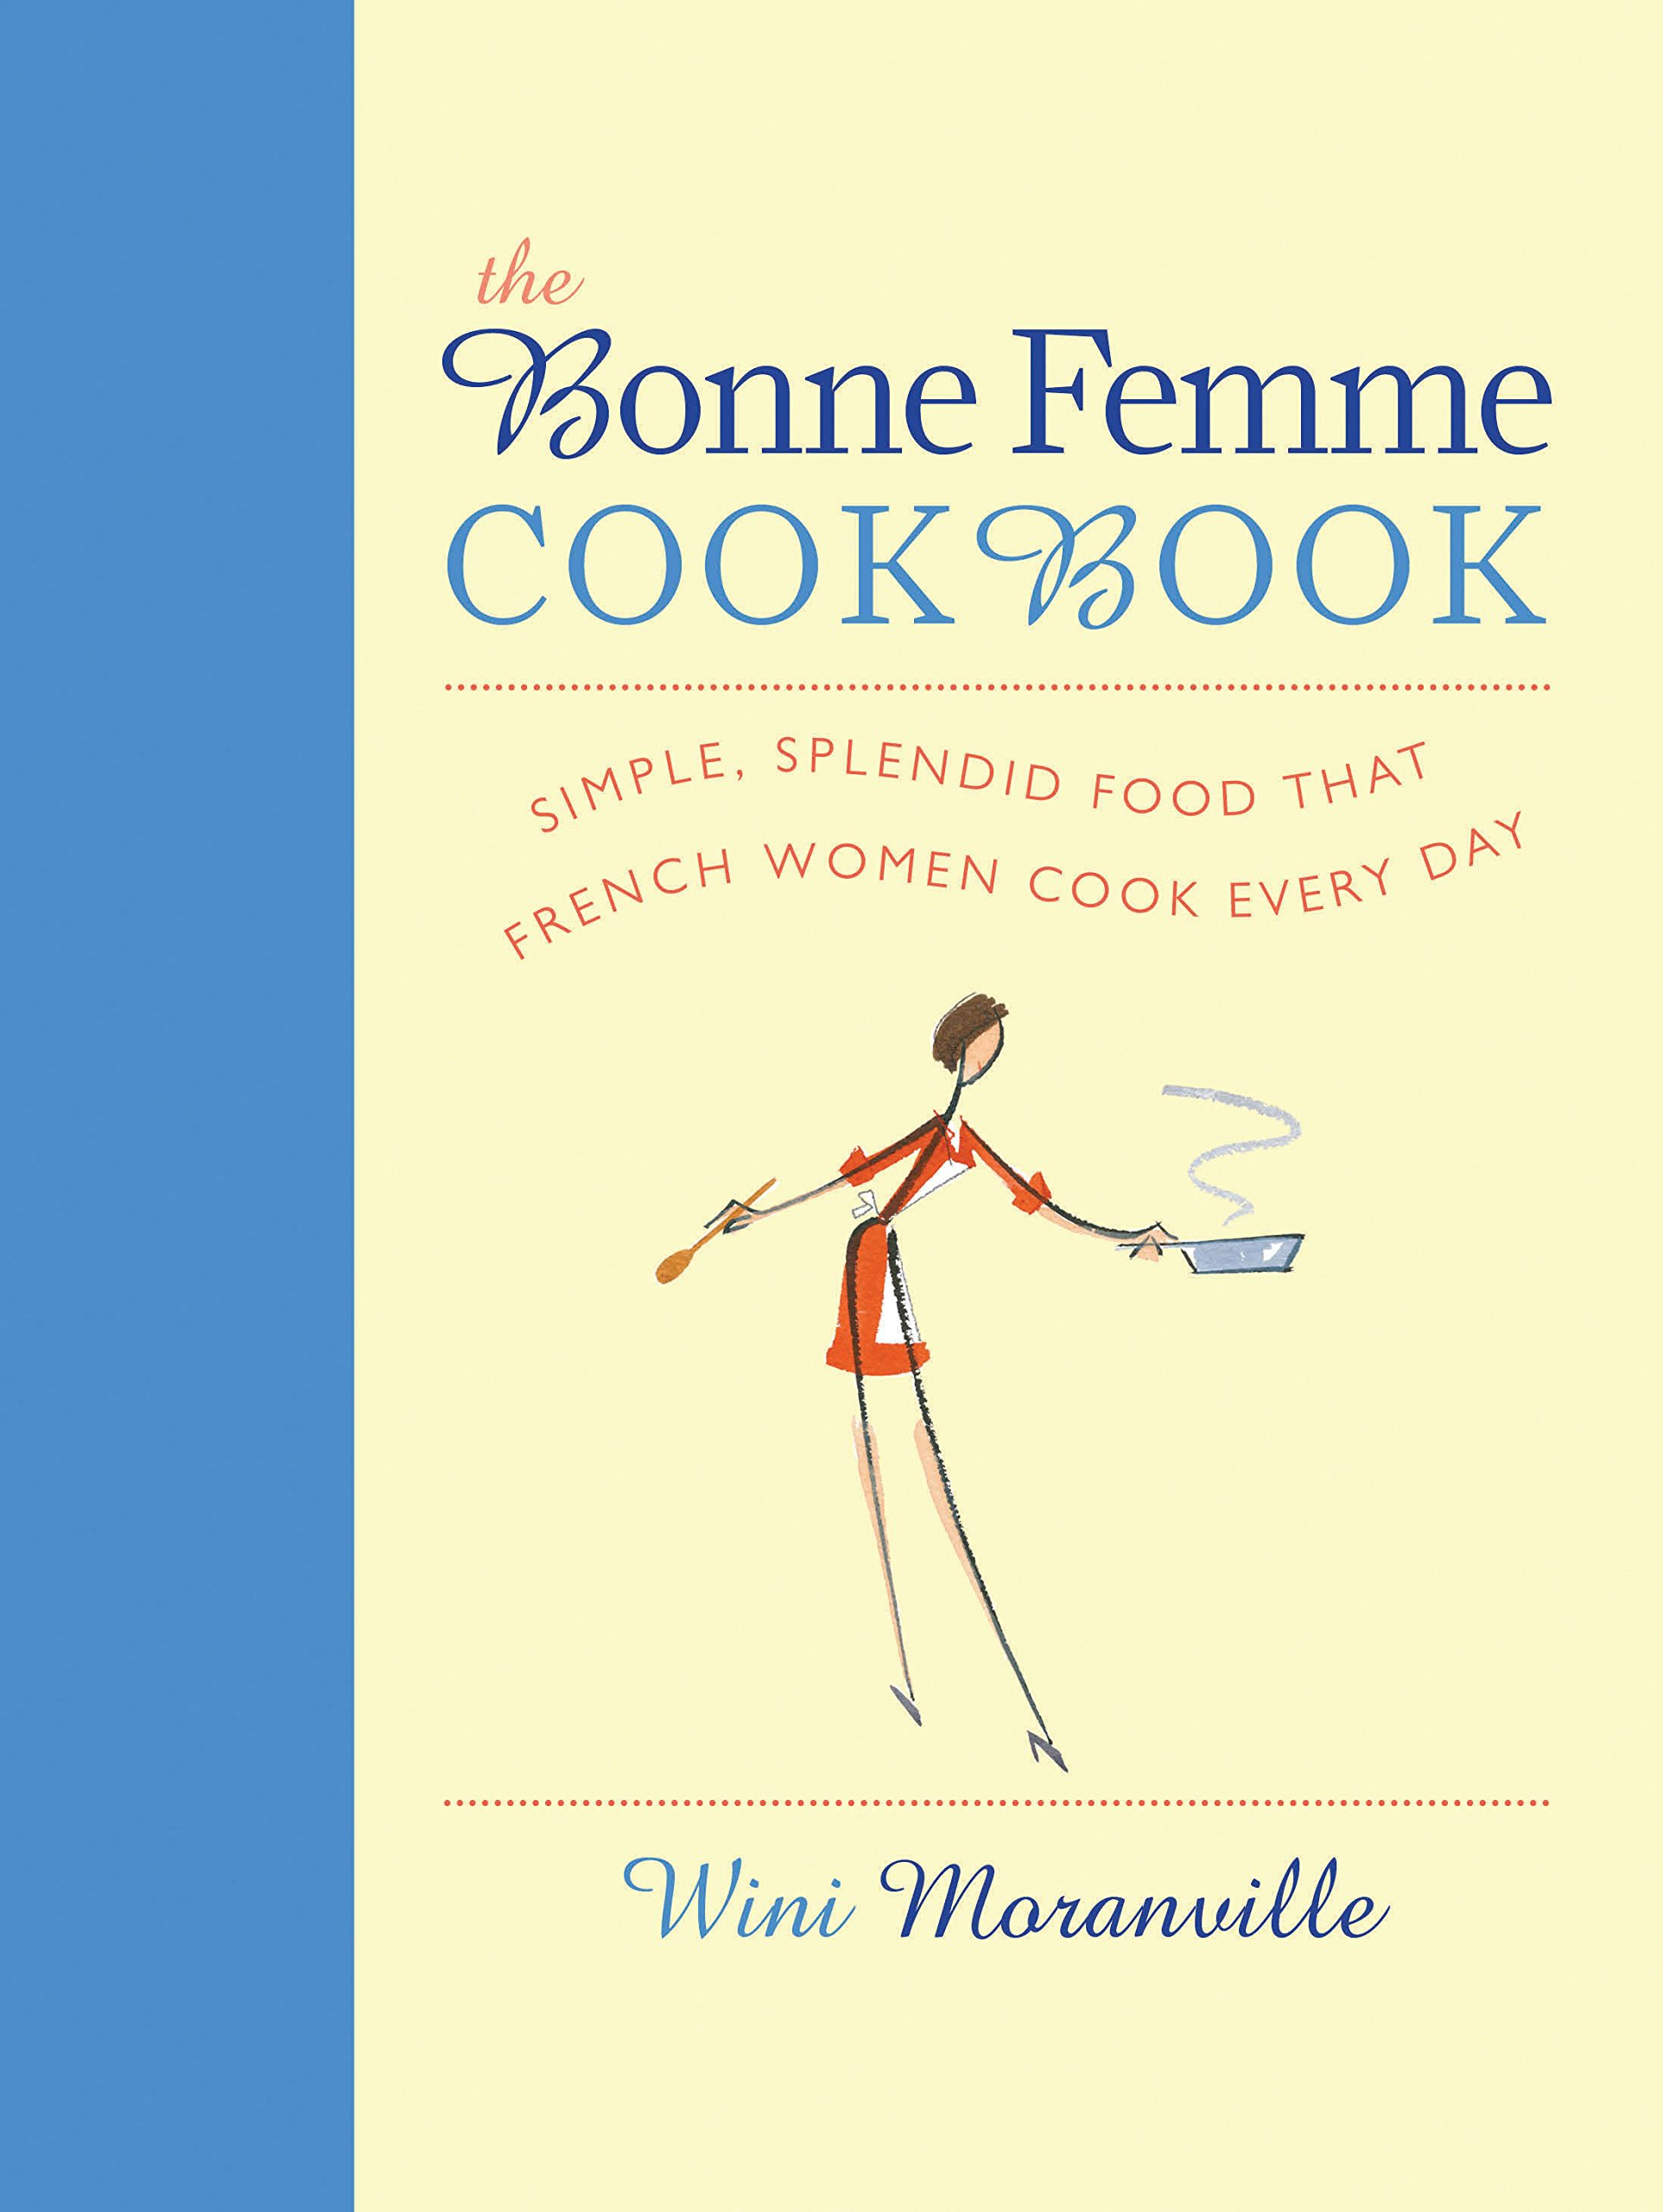 luxurious and splendid live stream chat room. The Bonne Femme Cookbook  Simple Splendid Food That French Women Cook Every Day Wini Moranville 9781558327498 Amazon com Books